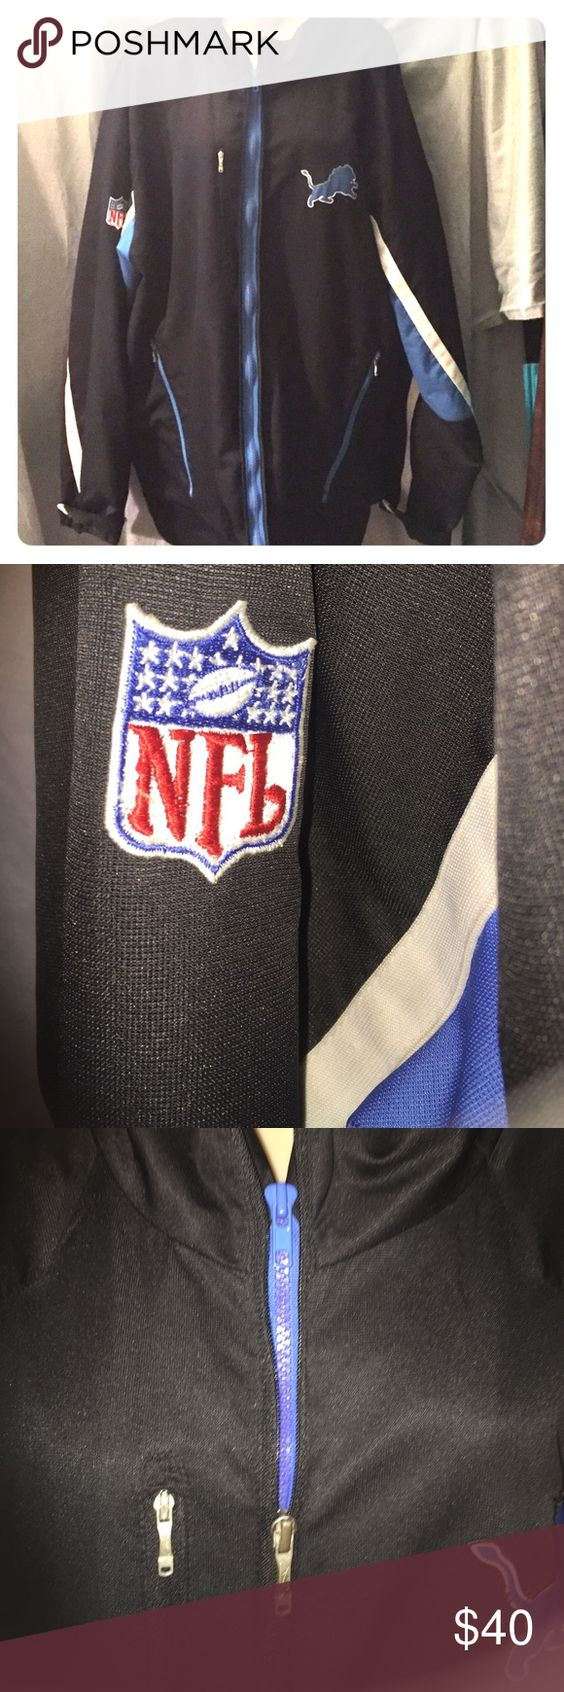 Men's reebox NFL Detroit Lions jacket 🦁  🏈 The season might be over 😢 but don't let that stop you from showing your ❤️ to the lions with this NFL jacket! Black with Honolulu blue and white strips on sleeves and Detroit lion logo on front.  It has a double zipper to either show black or a little pop of that Honolulu blue! Reebok Jackets & Coats